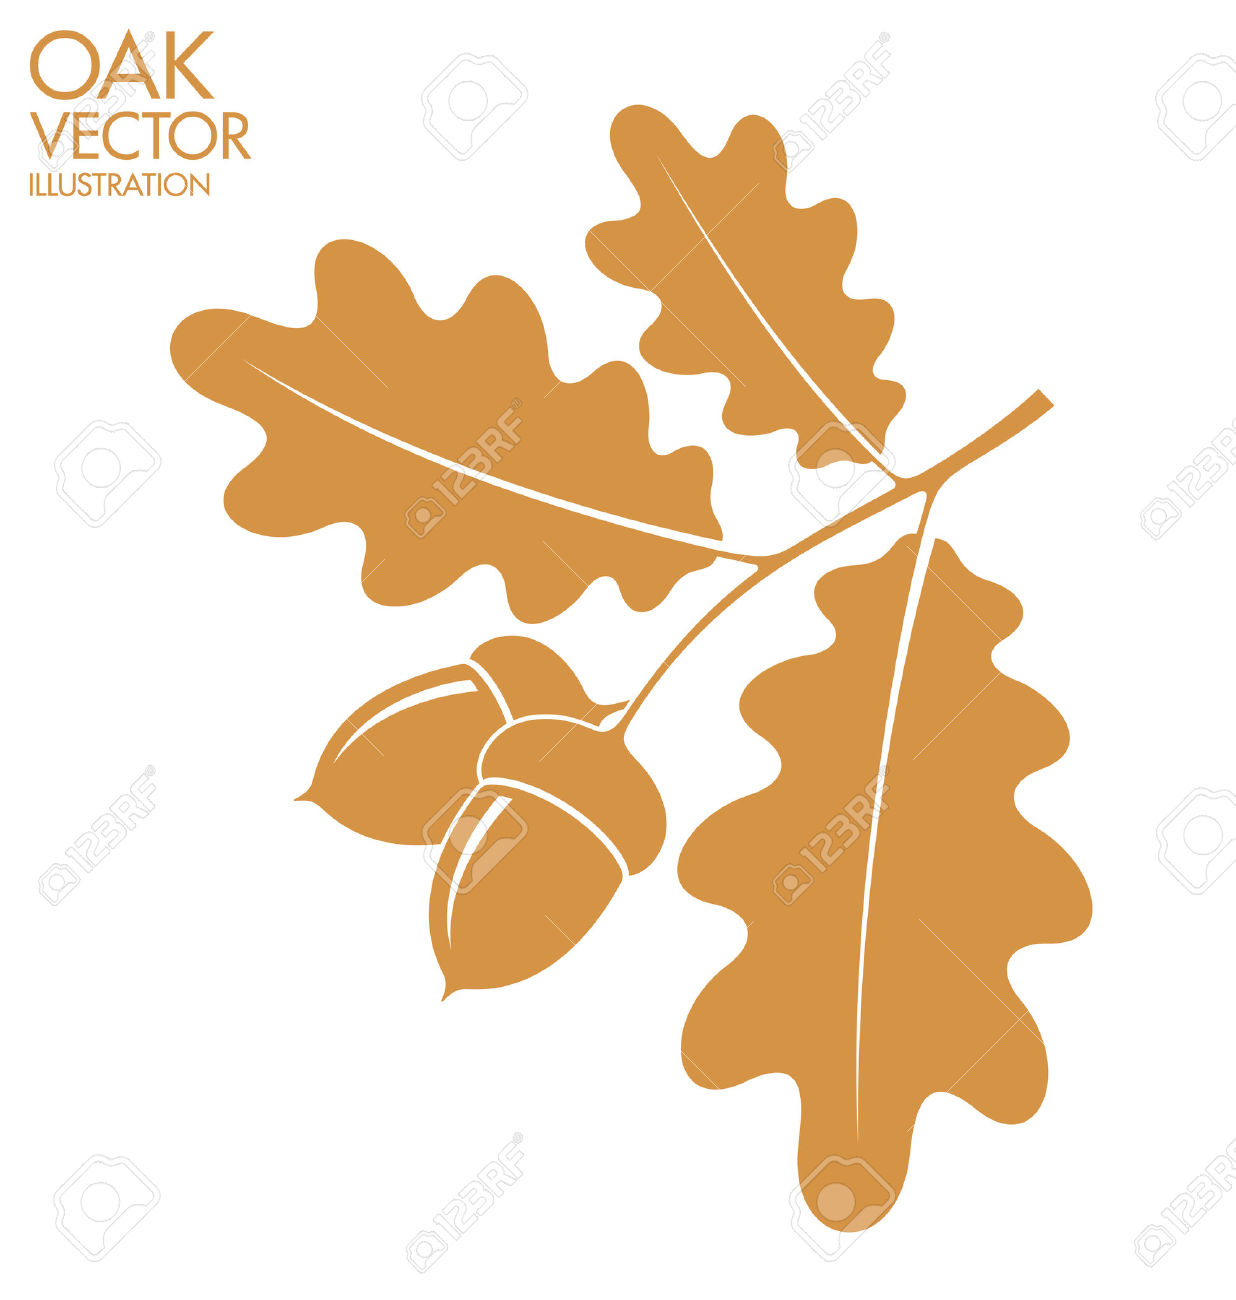 Oak leaves and acorns clipart 6 » Clipart Station.